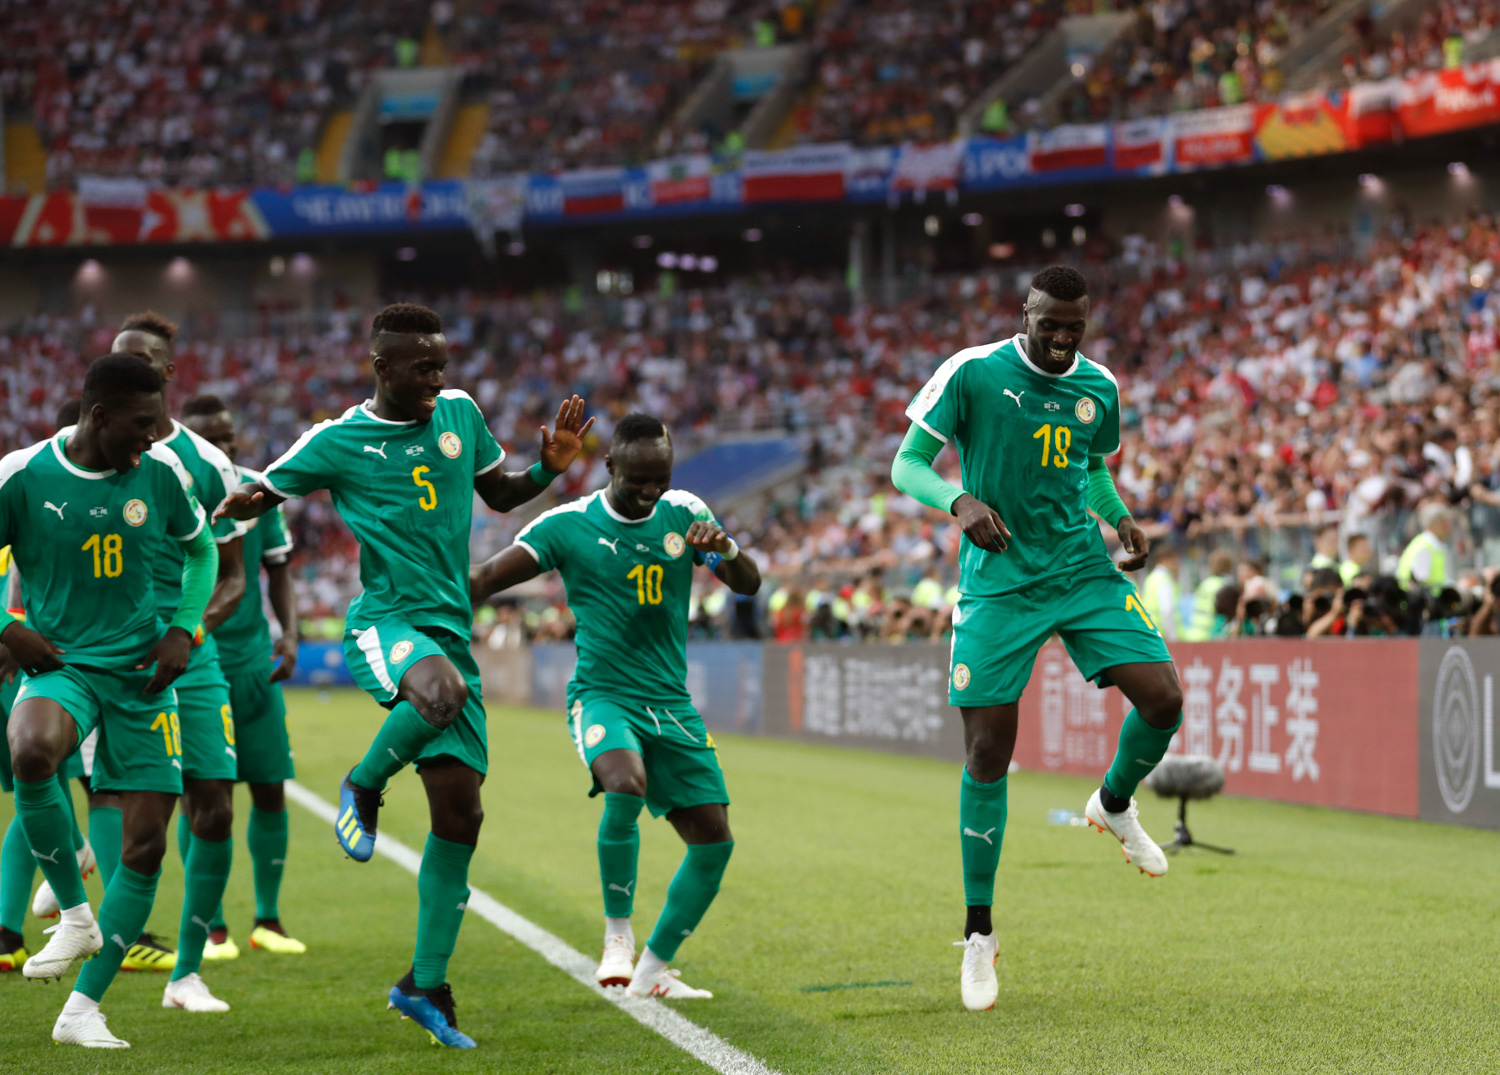 <div class='meta'><div class='origin-logo' data-origin='none'></div><span class='caption-text' data-credit='Eduardo Verdugo/AP'>Senegal's Mbaye Niang, right, dances in celebration with his teammates scoring his side's second goalduring the group H match between Poland and Senegal</span></div>